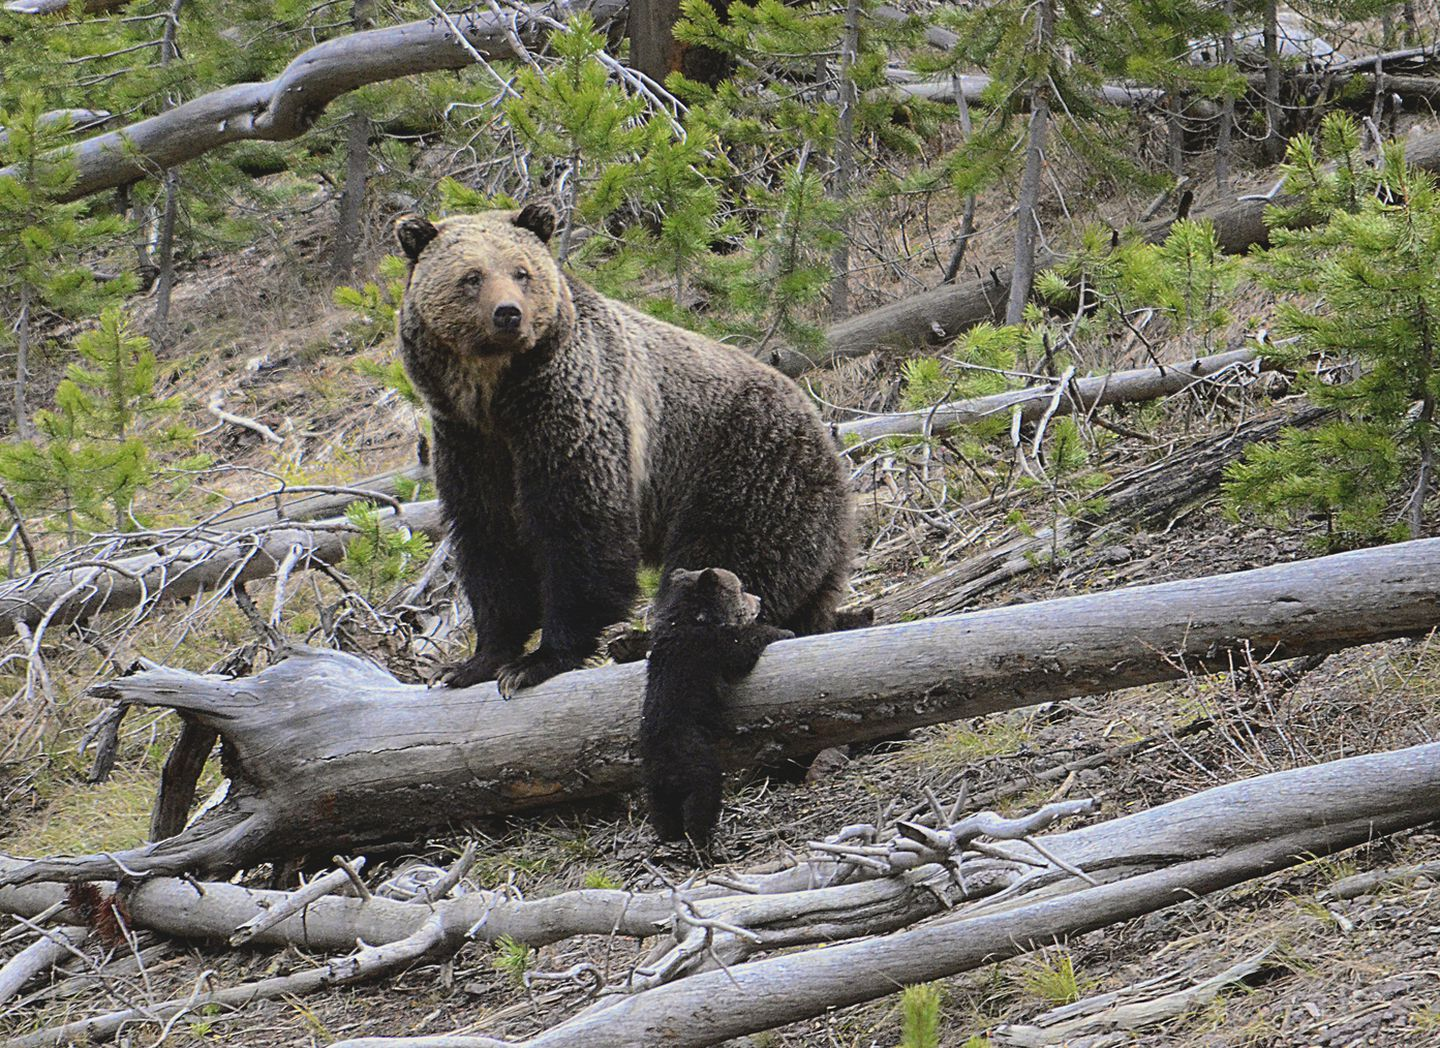 US officials will review whether grizzly bears have enough protections across the Lower 48 states